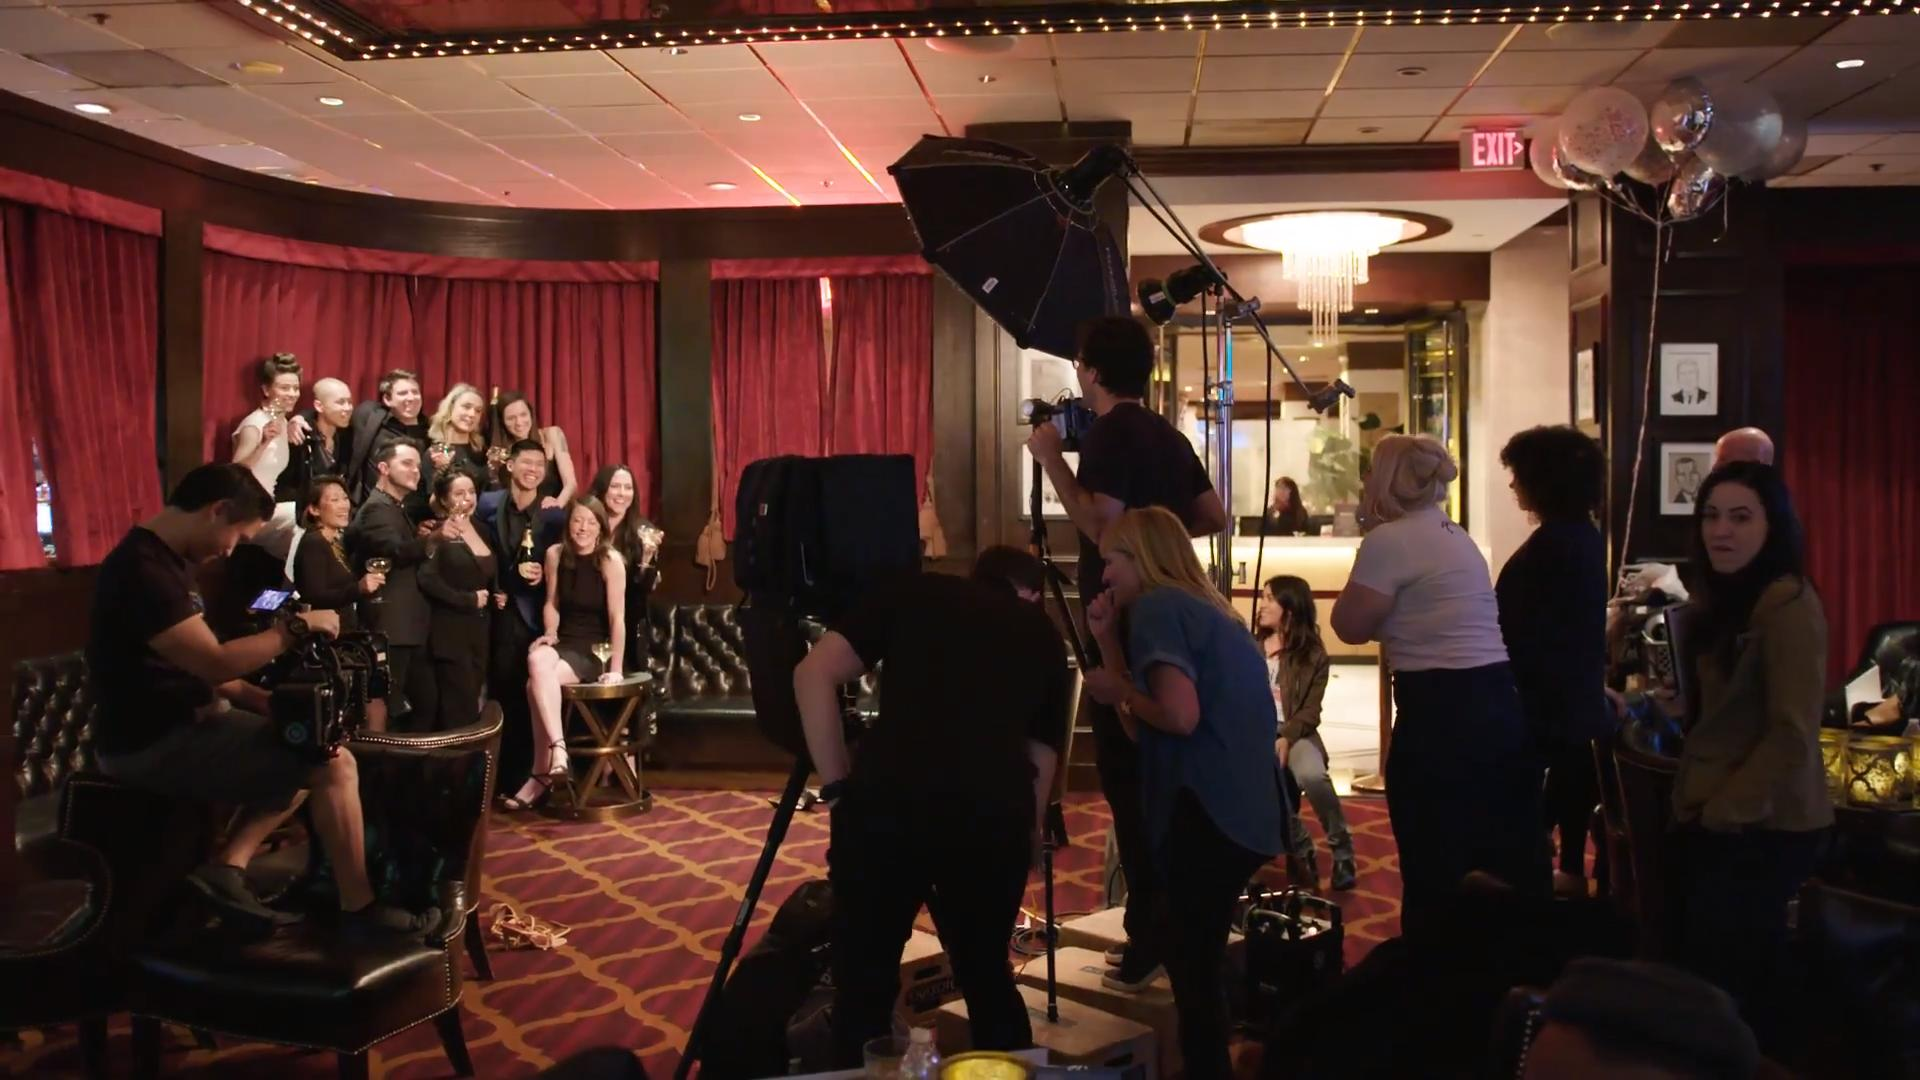 Food & Wine Best New Chefs 2018: Behind the Scene at the Las Vegas Photo Shoot